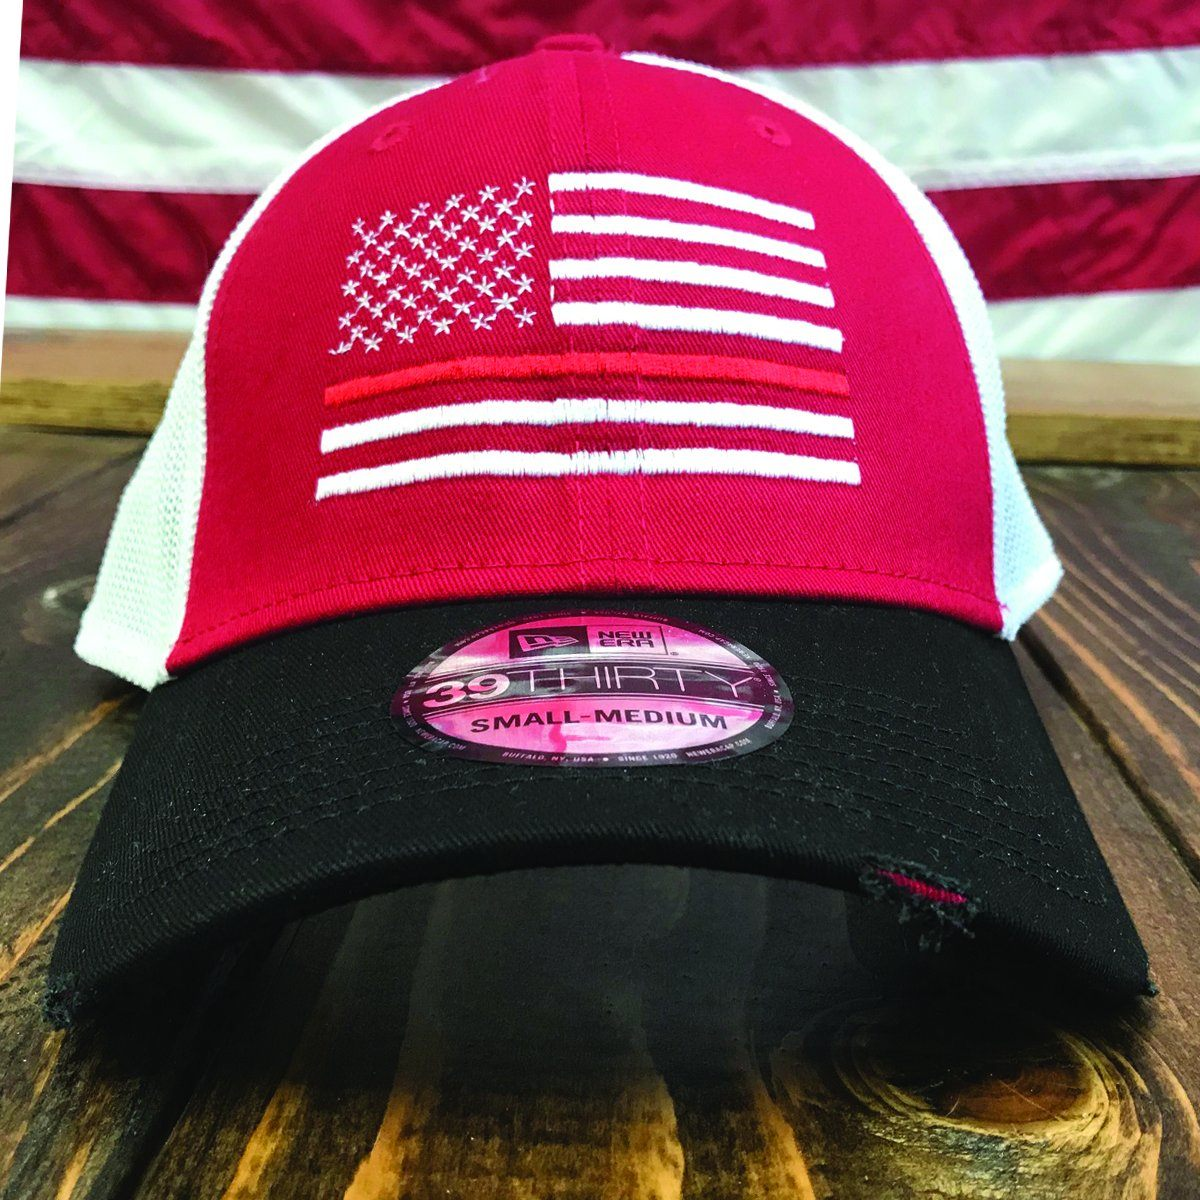 The Thin Red Line Vintage Mesh Hat - Discontinued